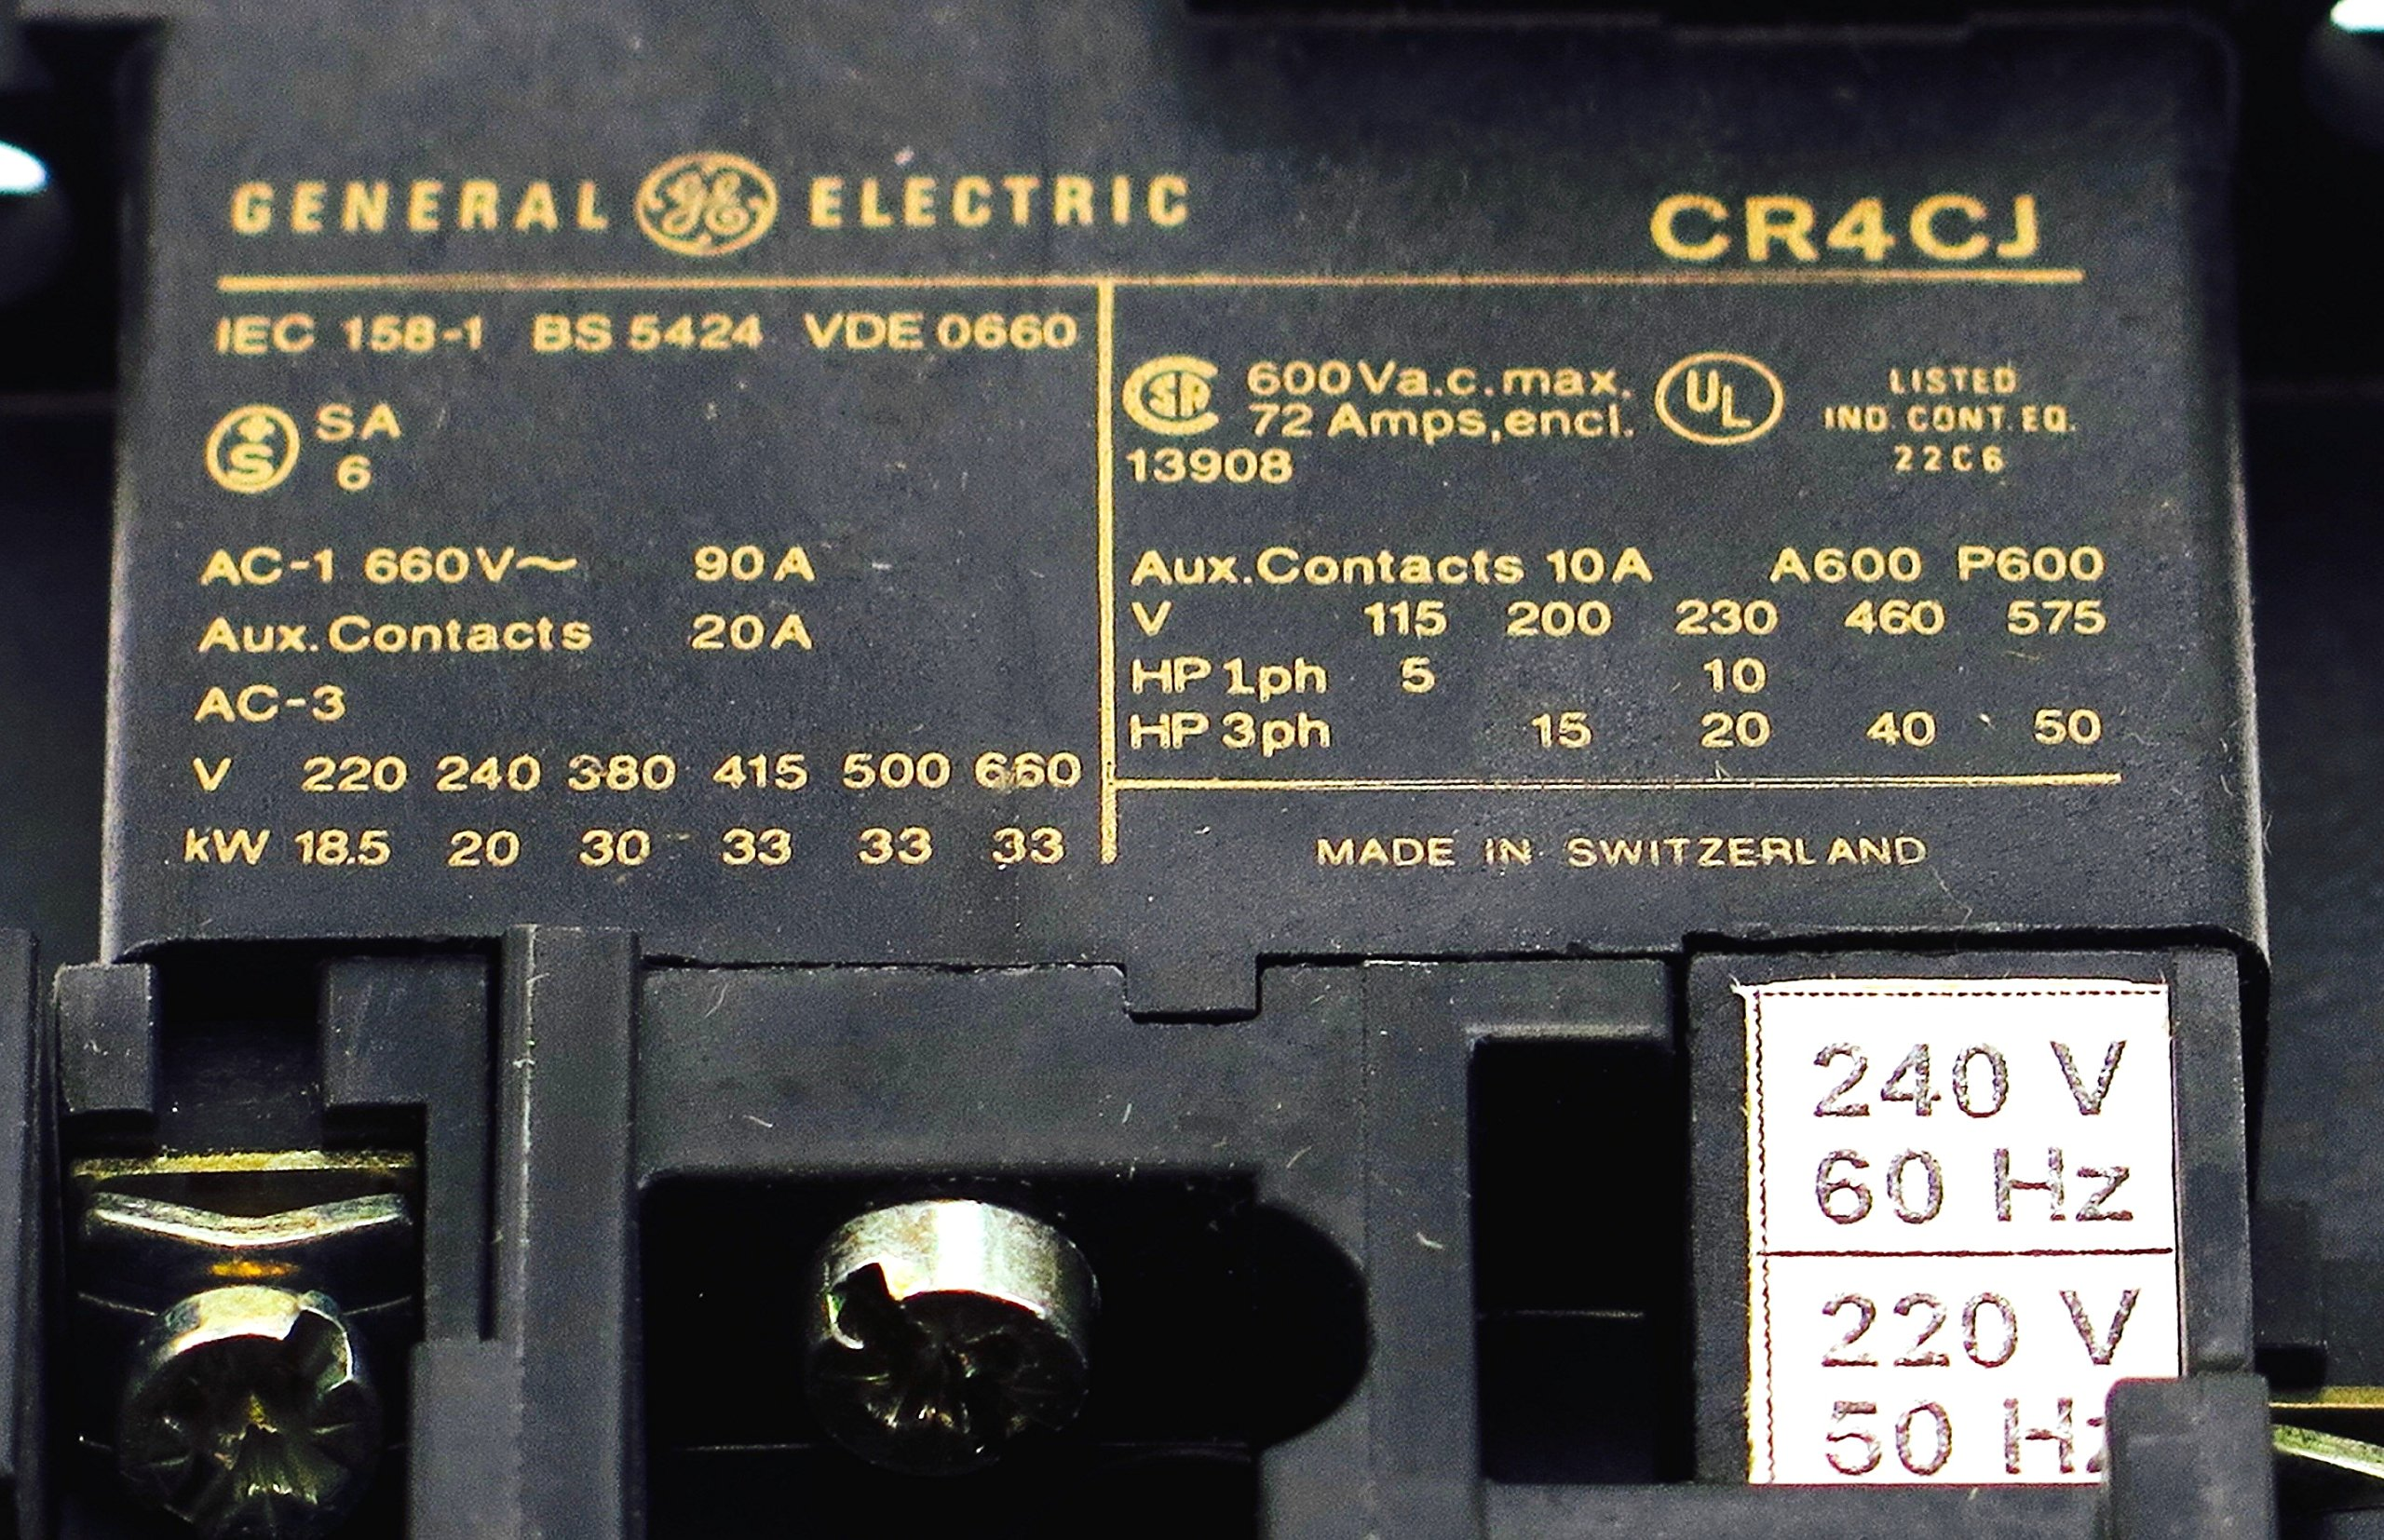 GE CR4CJB MAGNETIC CONTACTOR 56A 50HP 220/4240V 50/60HZ AC COIL FITS SPRECHER SCHUH CA3-60-220-NO by GE (Image #3)